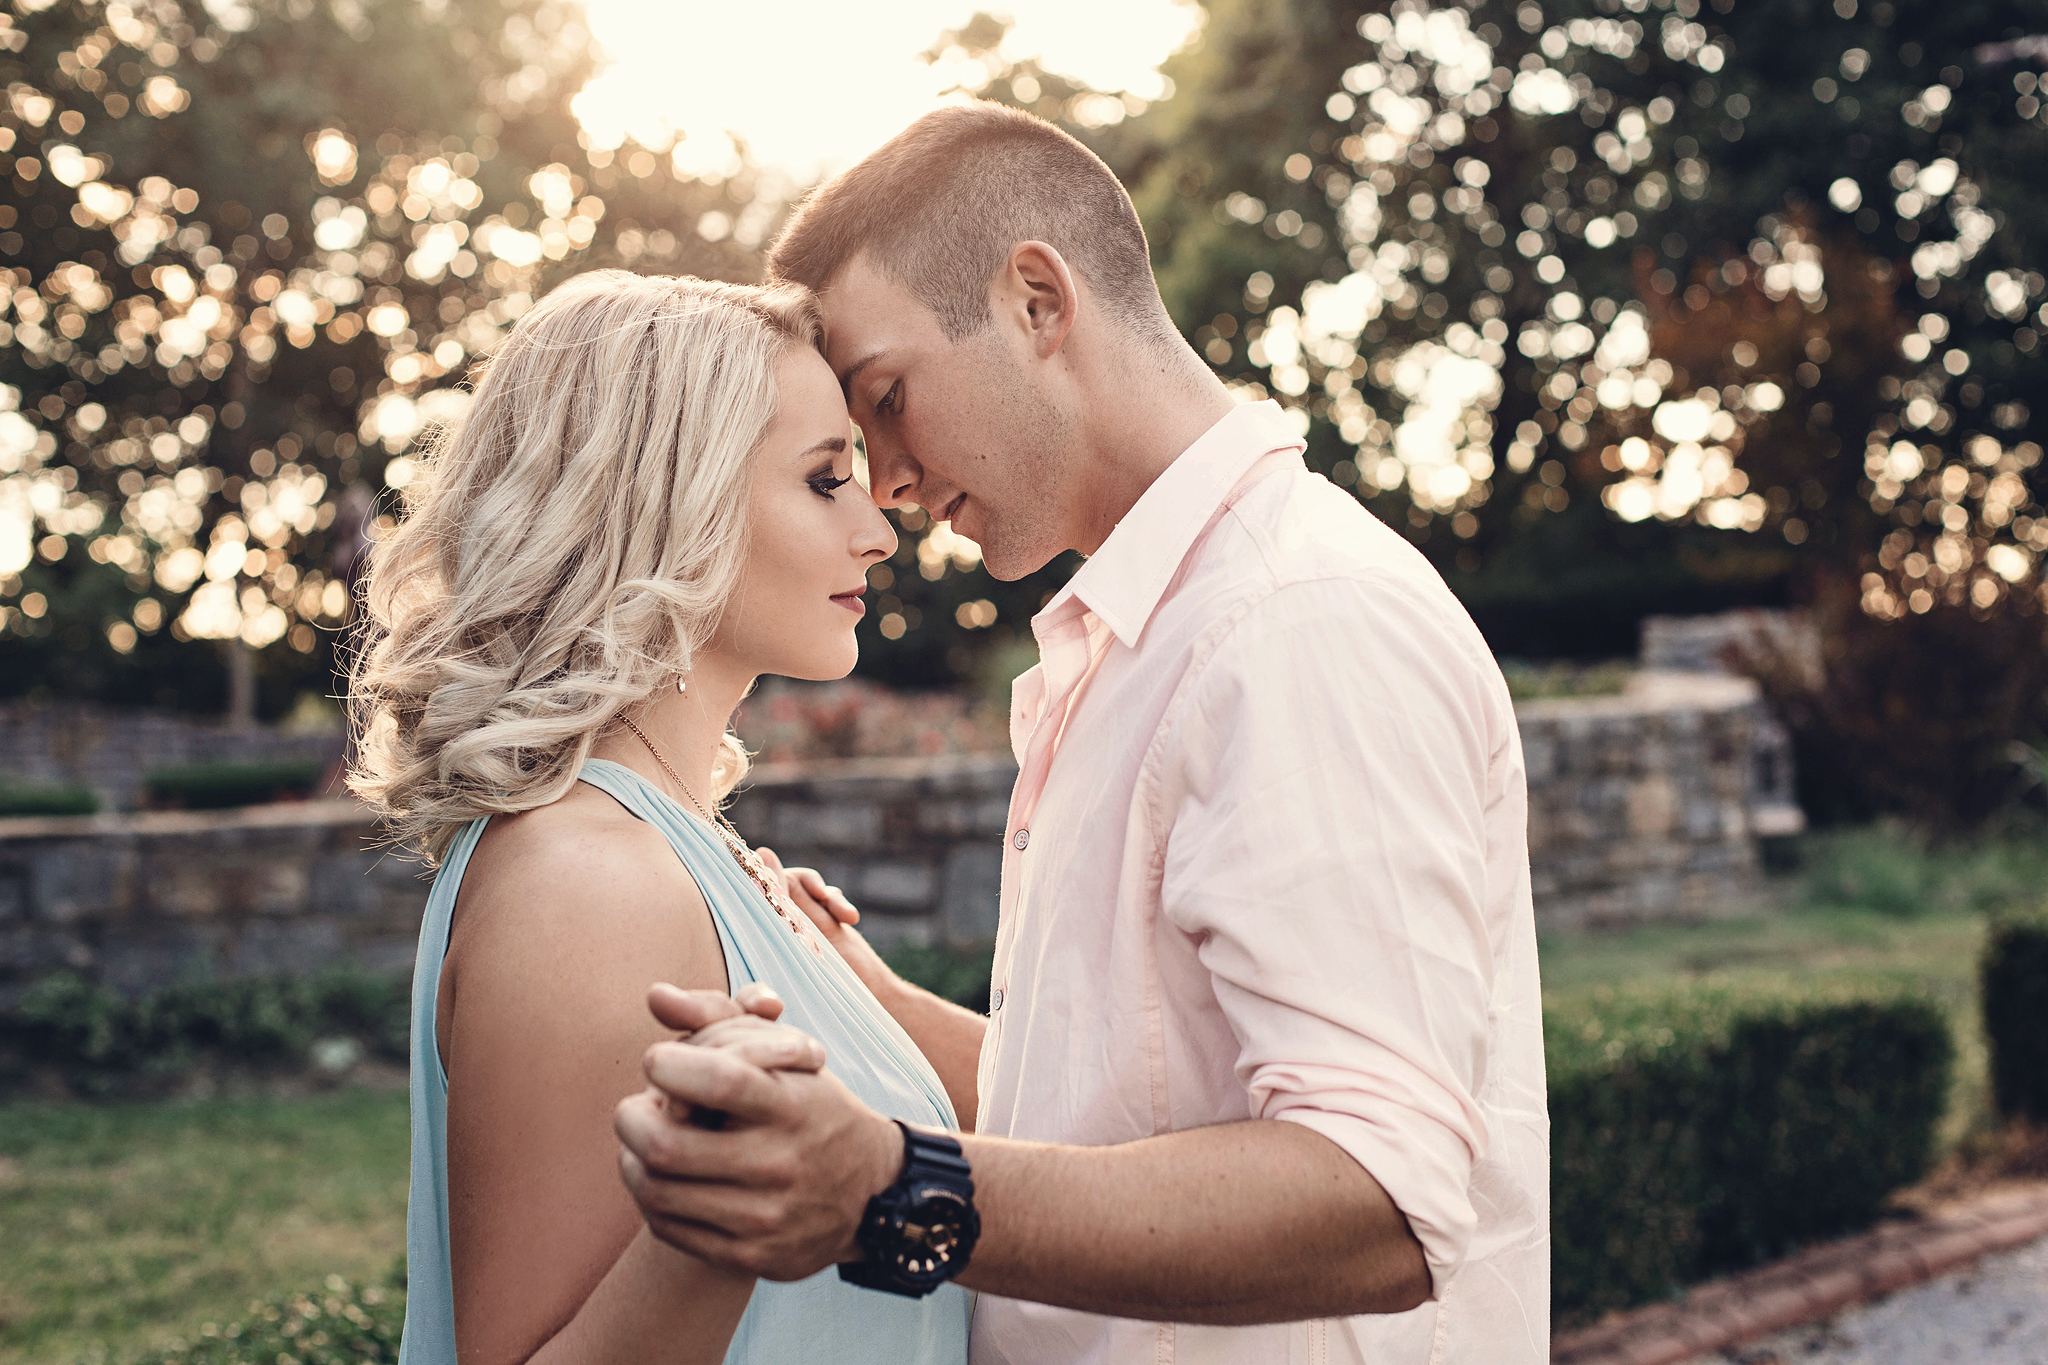 Cincinnati-and-Dayton-OH-Engagement-and-Wedding-photographer-8.jpg